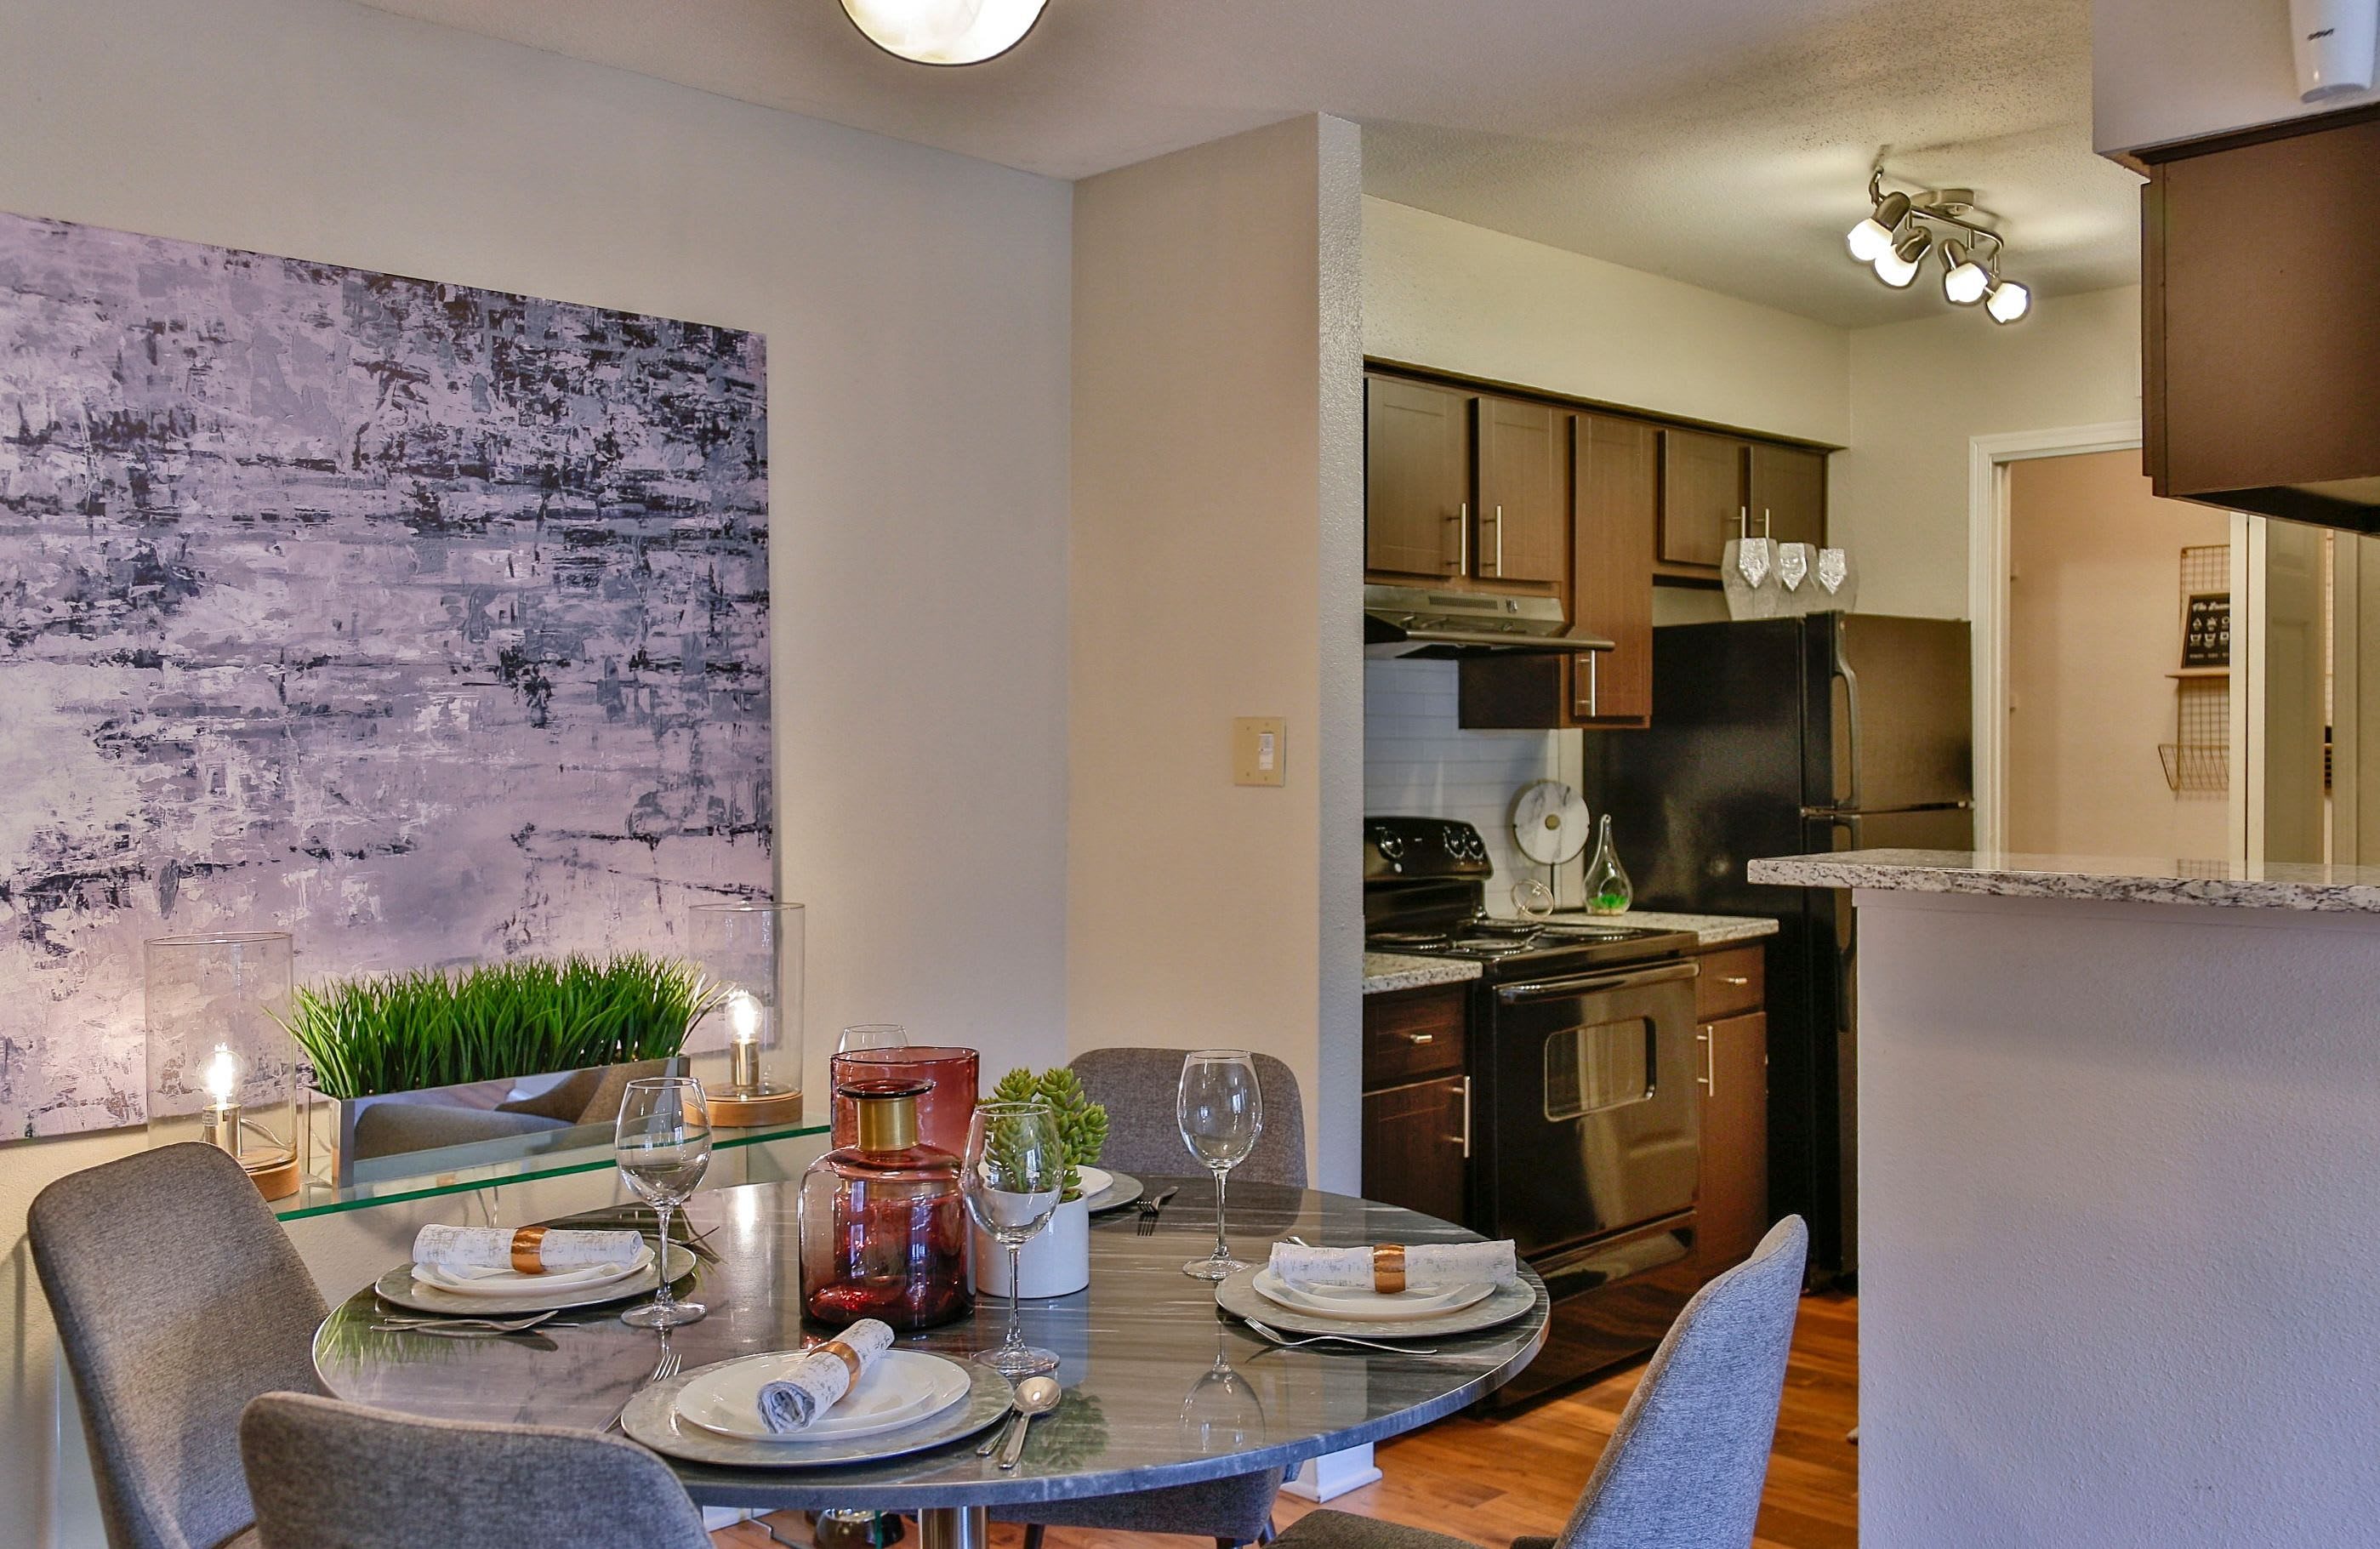 Dining area in model home at Allegro on Bell in Antioch, Tennessee